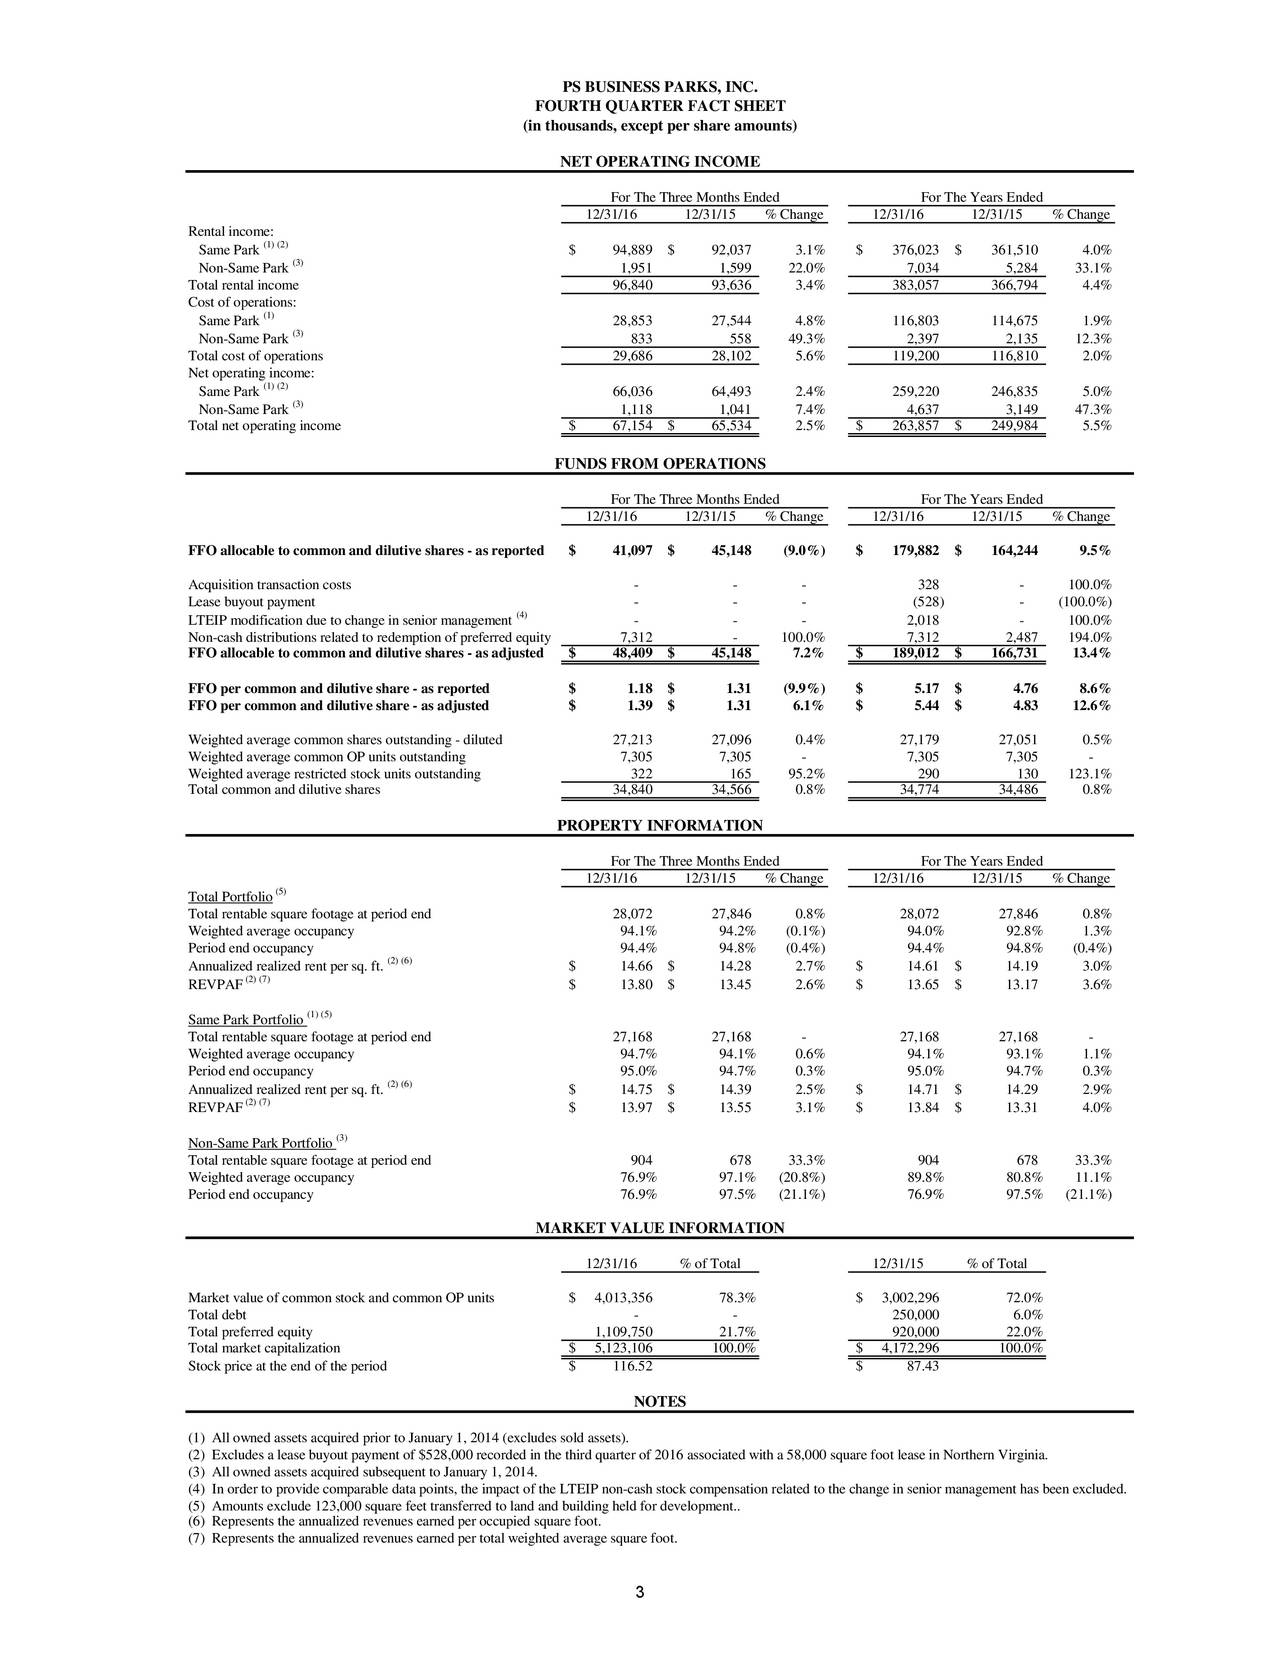 FOURTH QUARTER FACT SHEET (in thousands, except per share amounts) NET OPERATING INCOME For The Three Months Ended For The Years Ended 12/31/16 12/31/15 % Change 12/31/16 12/31/15 % Change Rental income: Same Park (1) (2) $ 94,889 $ 92,037 3.1% $ 376,023 $ 361,510 4.0% (3) Non-Same Park 1,951 1,599 22.0% 7,034 5,284 33.1% Total rental income 96,840 93,636 3.4% 383,057 366,794 4.4% Cost of operations: Same Park (1) 28,853 27,544 4.8% 116,803 114,675 1.9% (3) Non-Same Park 833 558 49.3% 2,397 2,135 12.3% Total cost of operations 29,686 28,102 5.6% 119,200 116,810 2.0% Net operating income: (1) (2) Same Park 66,036 64,493 2.4% 259,220 246,835 5.0% Non-Same Park (3) 1,118 1,041 7.4% 4,637 3,149 47.3% Total net operating income $ 67,154 $ 65,534 2.5% $ 263,857 $ 249,984 5.5% FUNDS FROM OPERATIONS For The Three Months Ended For The Years Ended 12/31/16 12/31/15 % Change 12/31/16 12/31/15 % Change FFO allocable to common and dilutive shares - as reported $ 41,097 $ 45,148 (9.0%) $ 179,882 $ 164,244 9.5% Acquisition transaction costs - - - 328 - 100.0% Lease buyout payment - - - (528) - (100.0%) LTEIP modification due to change in senior management4) - - - 2,018 - 100.0% Non-cash distributions related to redemption of preferred equity 7,312 - 100.0% 7,312 2,487 194.0% FFO allocable to common and dilutive shares - as adjusted $ 48,409 $ 45,148 7.2% $ 189,012 $ 166,731 13.4% FFO per common and dilutive share - as reported $ 1.18 $ 1.31 (9.9%) $ 5.17 $ 4.76 8.6% FFO per common and dilutive share - as adjusted $ 1.39 $ 1.31 6.1% $ 5.44 $ 4.83 12.6% Weighted average common shares outstanding - diluted 27,213 27,096 0.4% 27,179 27,051 0.5% Weighted average common OP units outstanding 7,305 7,305 - 7,305 7,305 - Weighted average restricted stock units outstanding 322 165 95.2% 290 130 123.1% Total common and dilutive shares 34,840 34,566 0.8% 34,774 34,486 0.8% PROPERTY INFORMATION For The Three Months Ended For The Years Ended 12/31/16 12/31/15 % Change 12/31/16 12/31/15 % Change